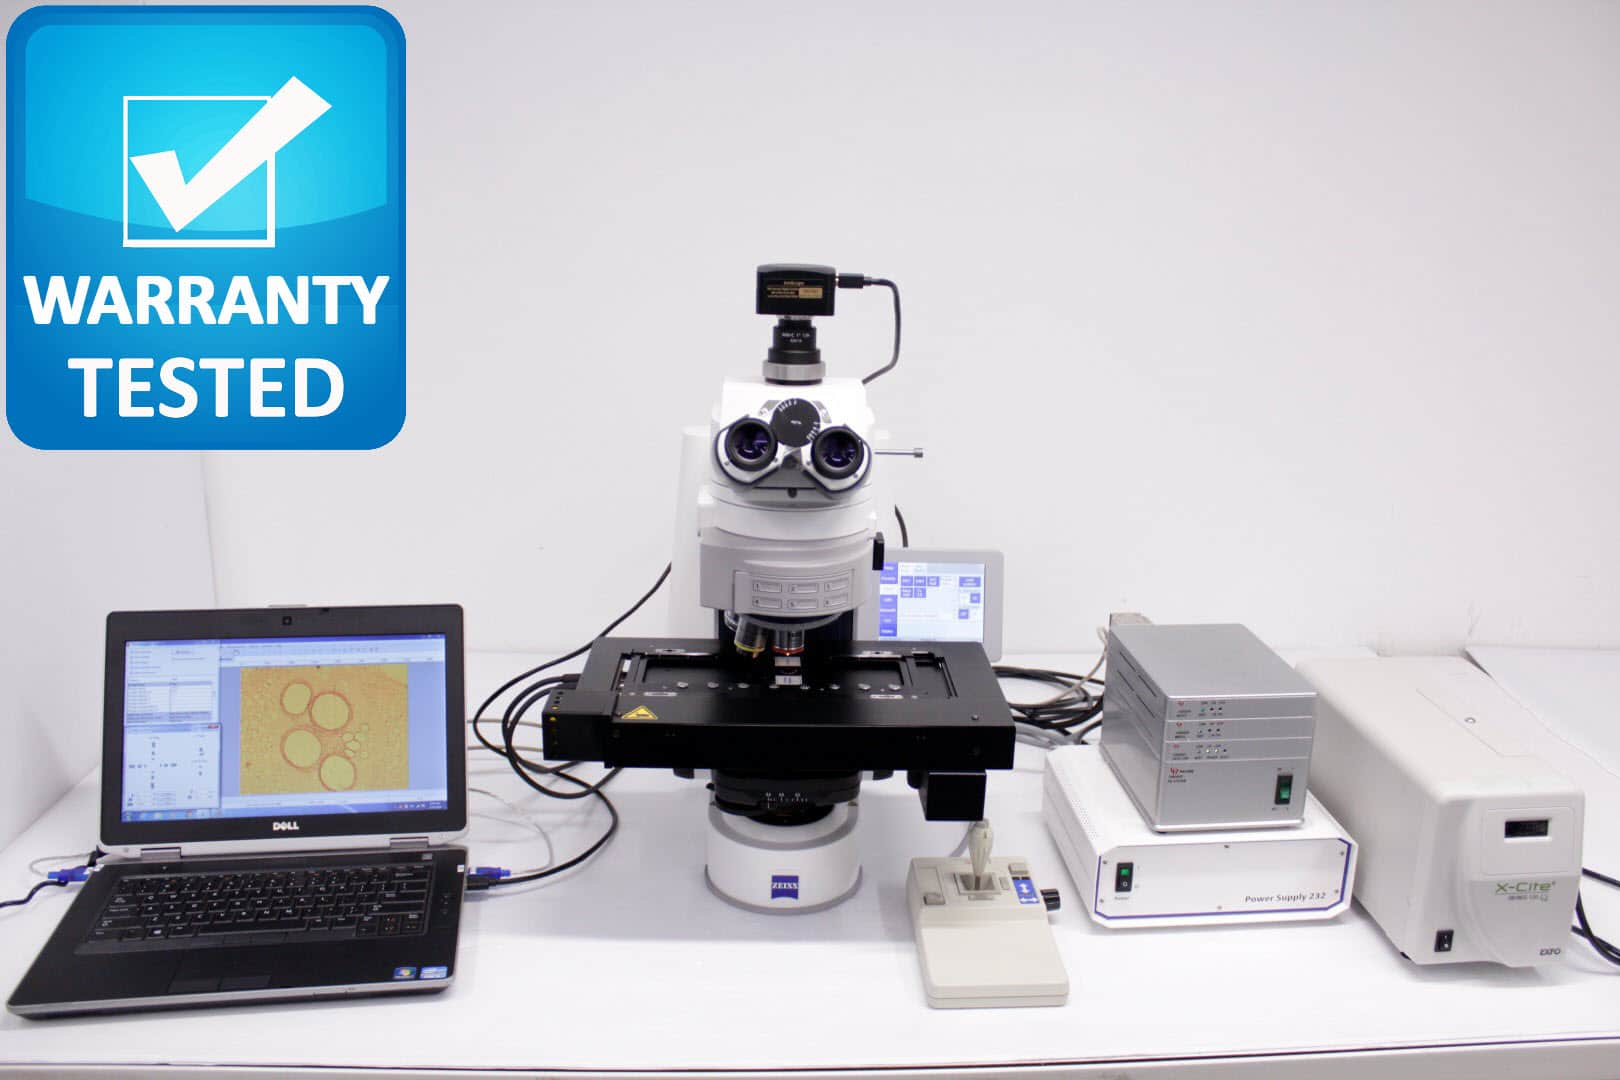 Zeiss AXIO Imager.Z2 Motorized Fluorescence Microscope